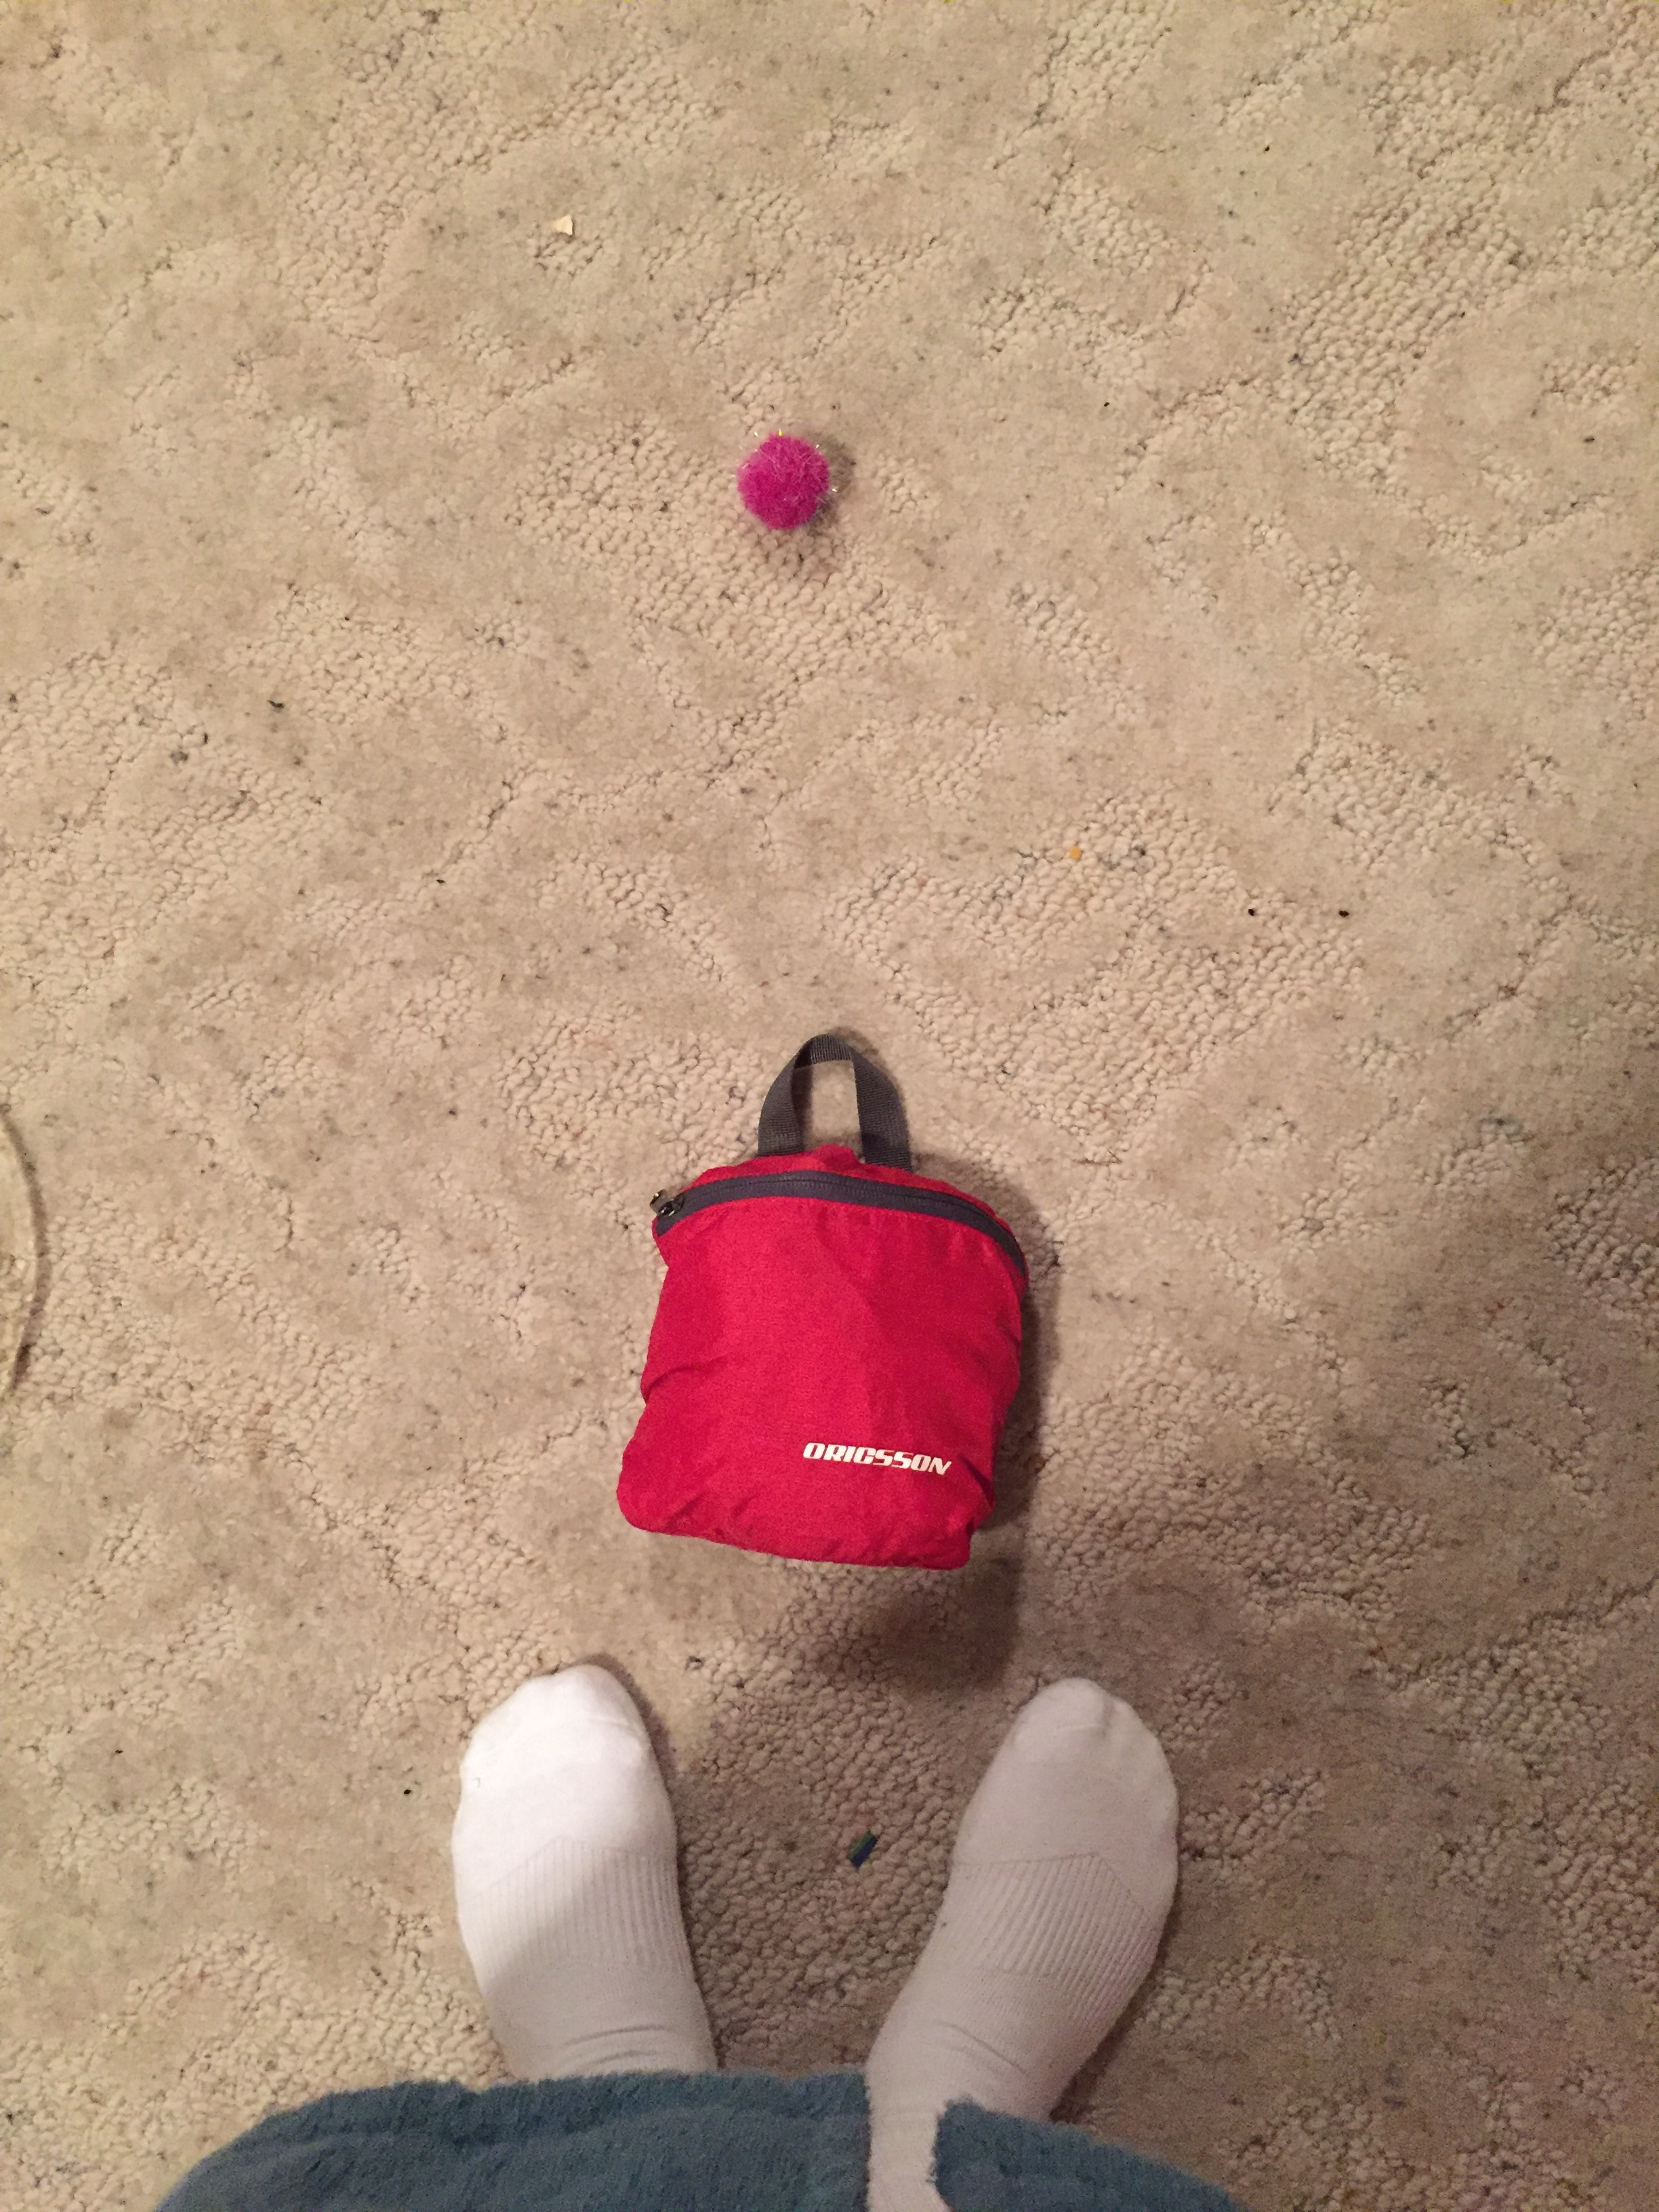 """This was my favorite """"travel-size"""" item on my recent trip to Europe: my backpack! Unzip this little purse and a backpack large enough to carry some (but not too much) stuff miraculously emerges!!"""